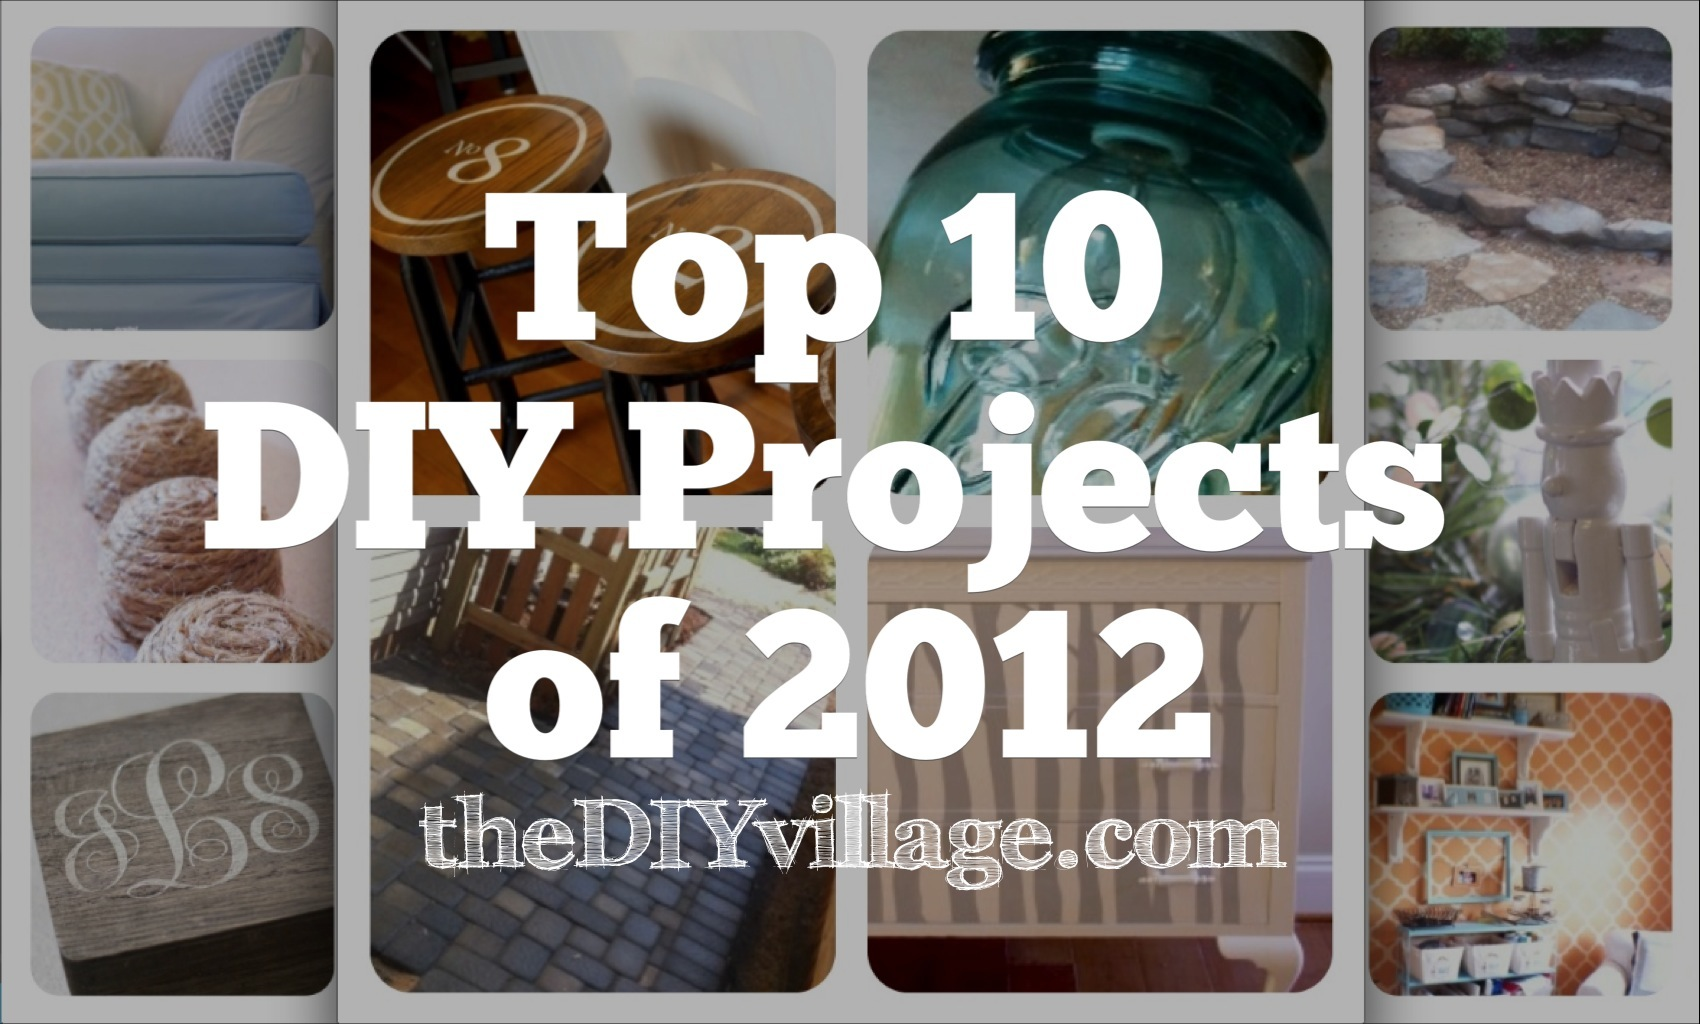 Top 10 do it yourself projects of 2012 the diy village top 10 do it yourself projects of 2012 by thediyvillage solutioingenieria Image collections